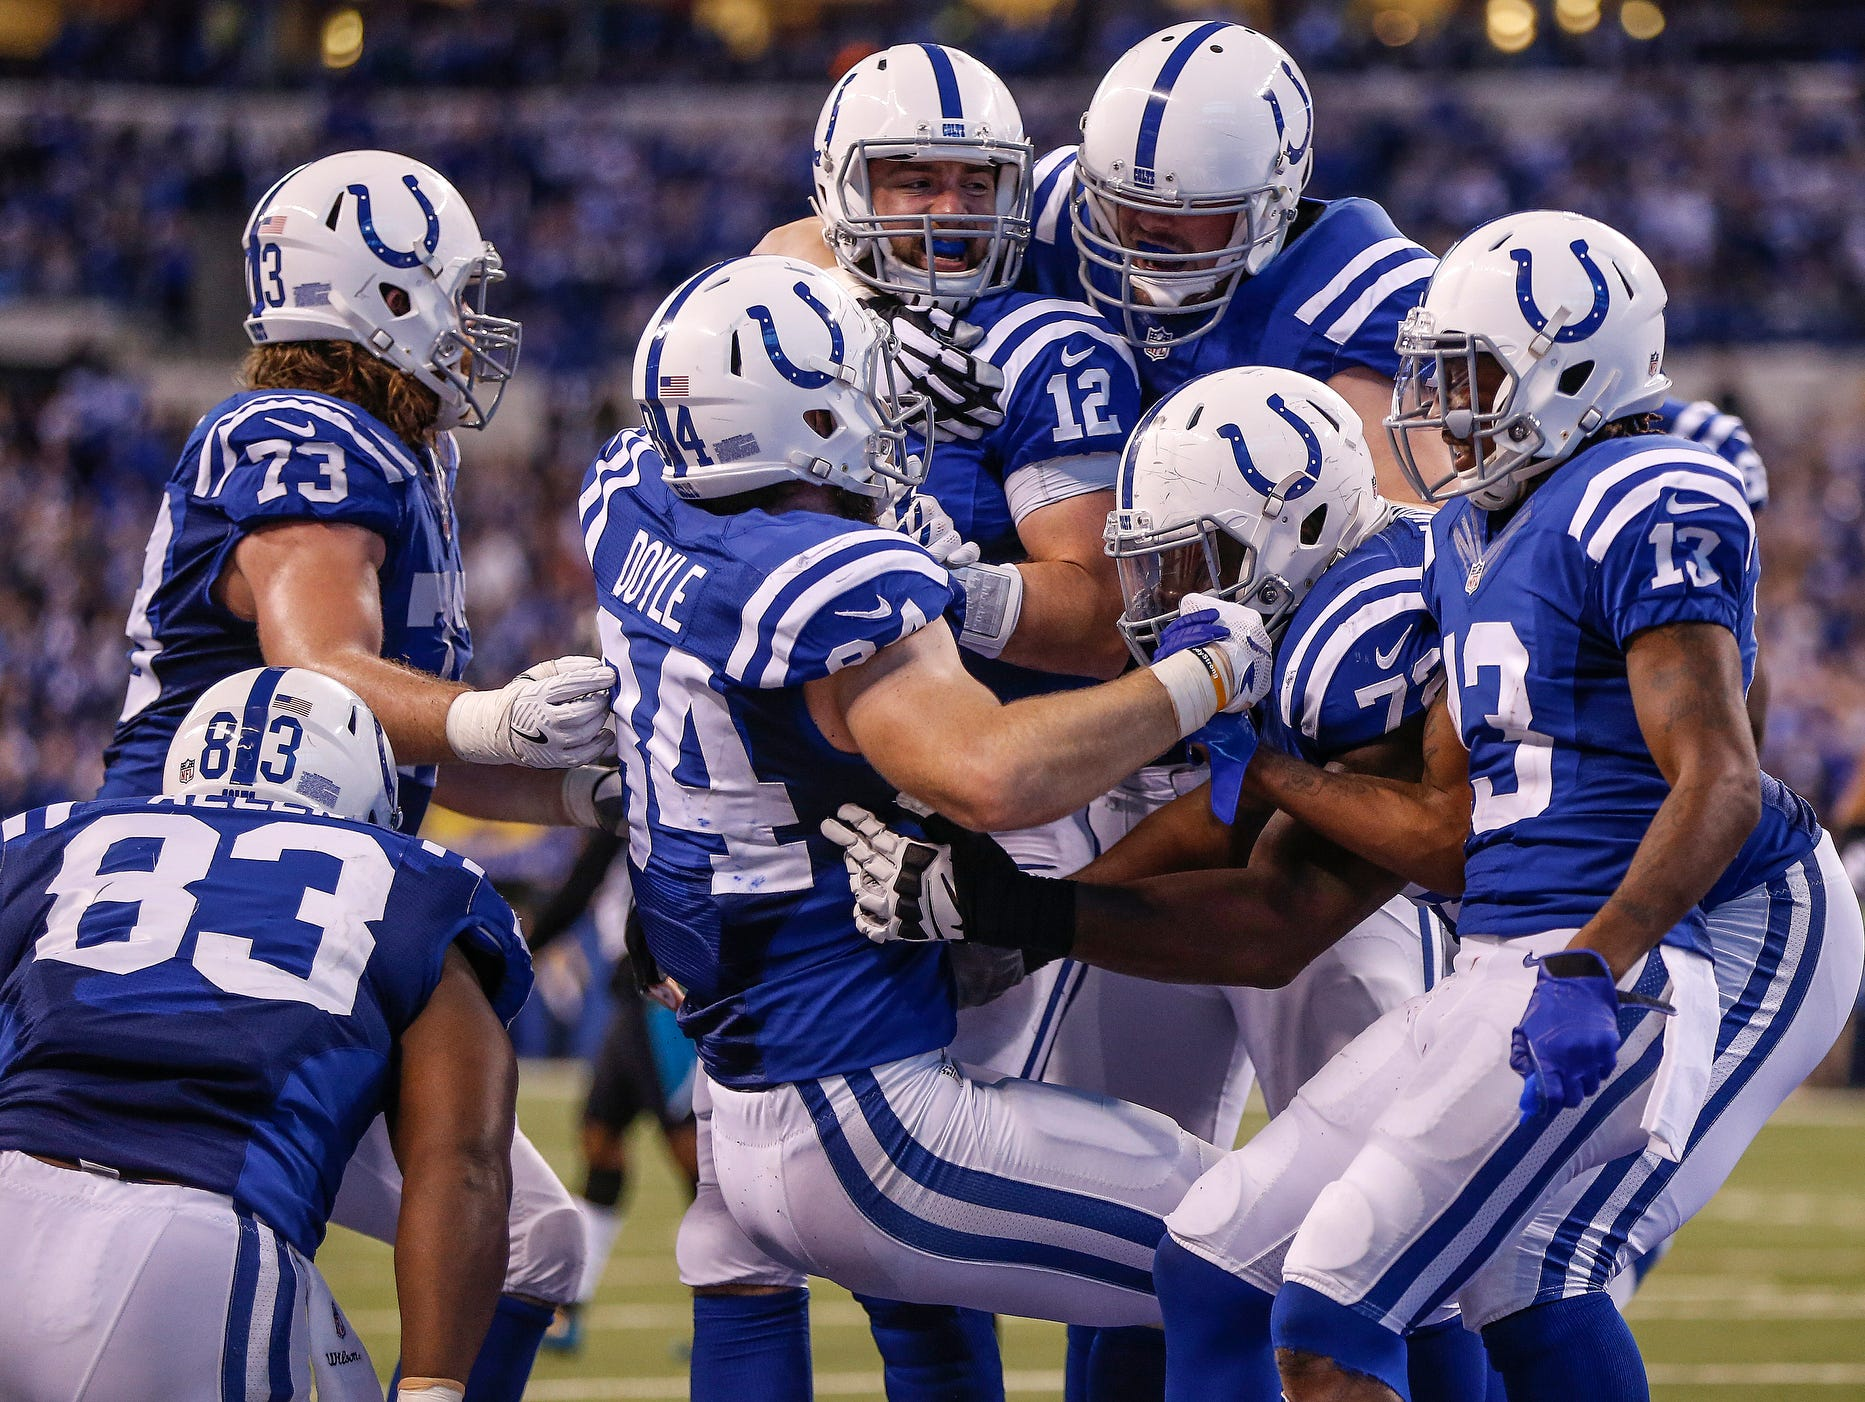 Enjoy an Insider experience at the Colts Corporate Luncheon Series Nov. 7. Enter 10/16-10/29